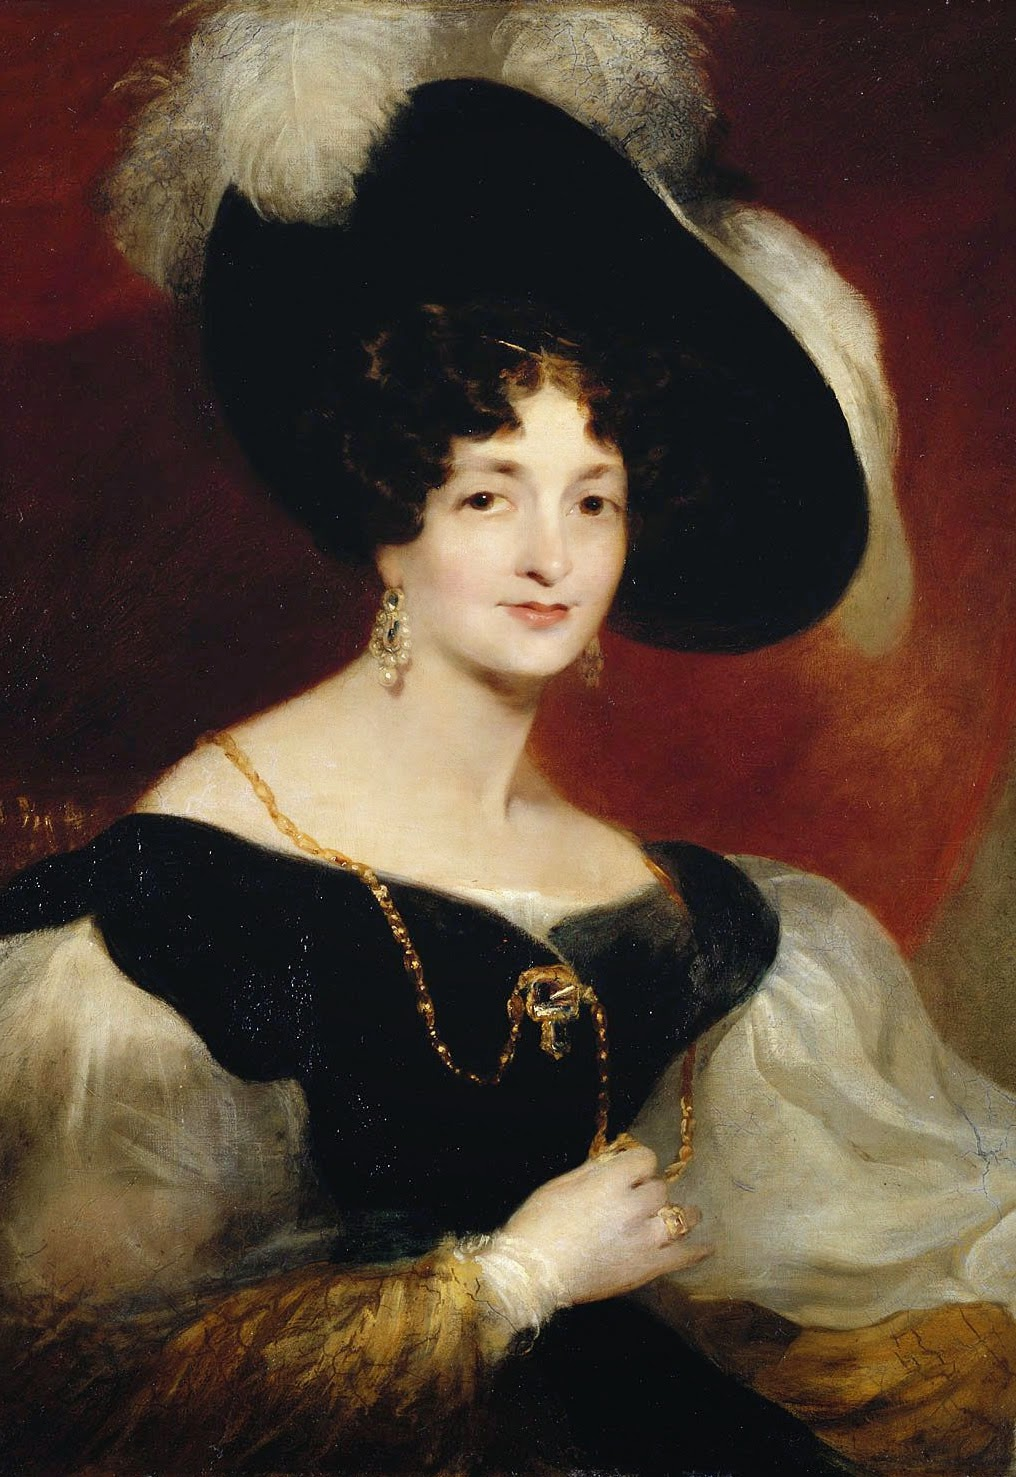 Victoria of Saxe-Coburg-Saalfeld, the sister of Prince Leopold, the mother of Queen Victoria